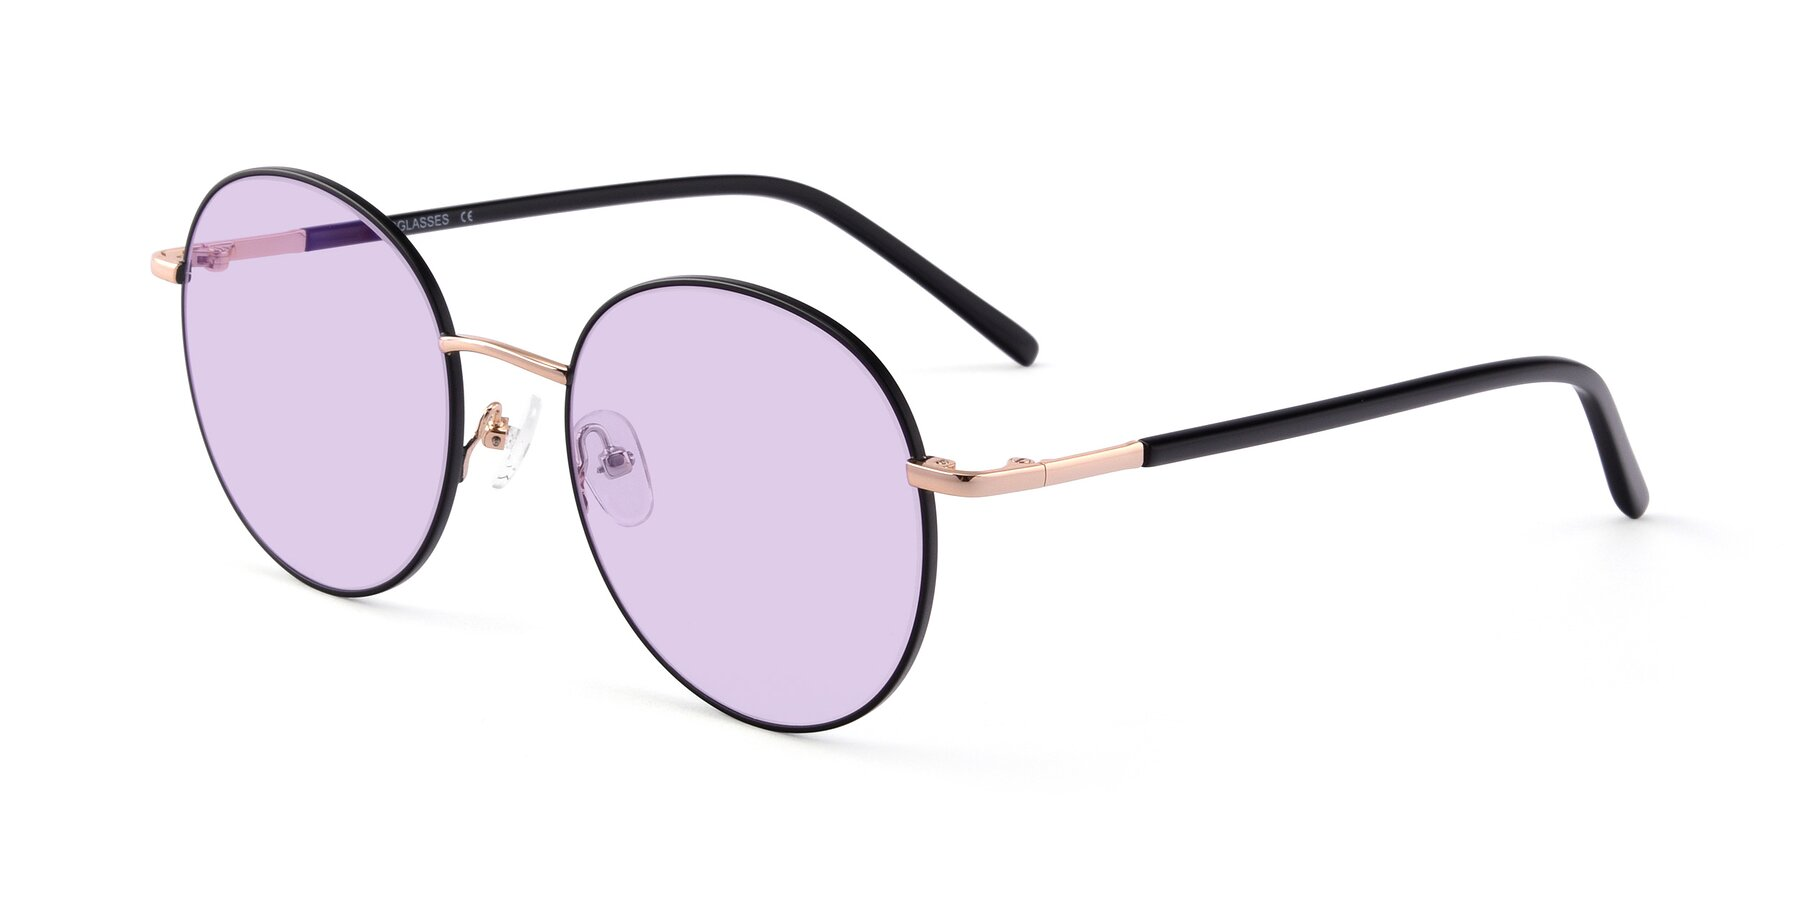 Angle of Cosmos in Black-Gold with Light Purple Tinted Lenses